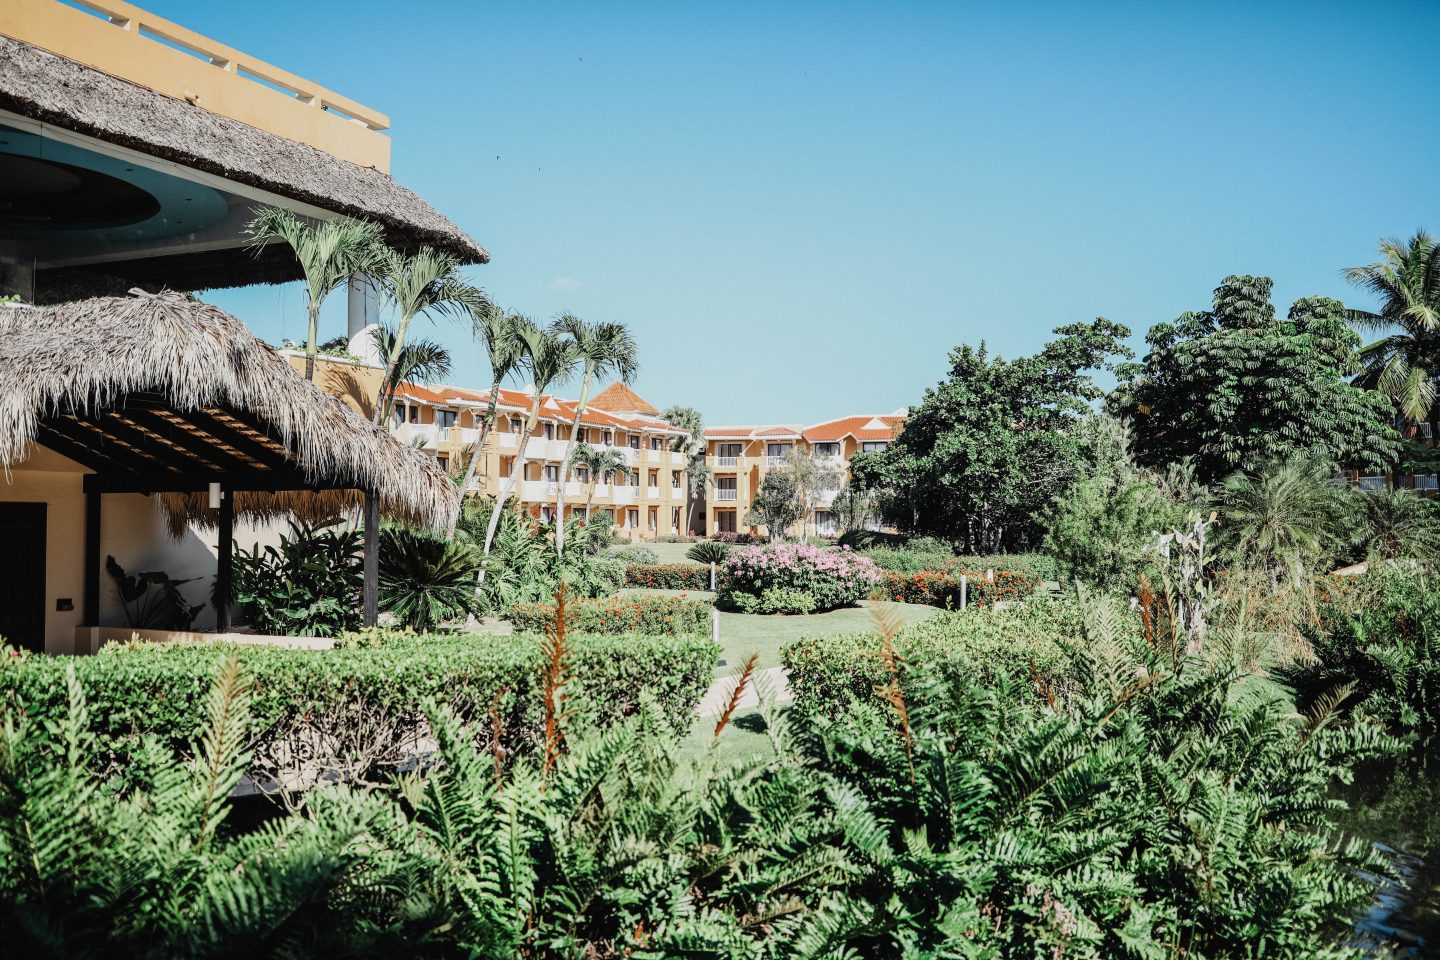 Hotel Wyndham Dominicus Palace marie and mood blog lifestyle